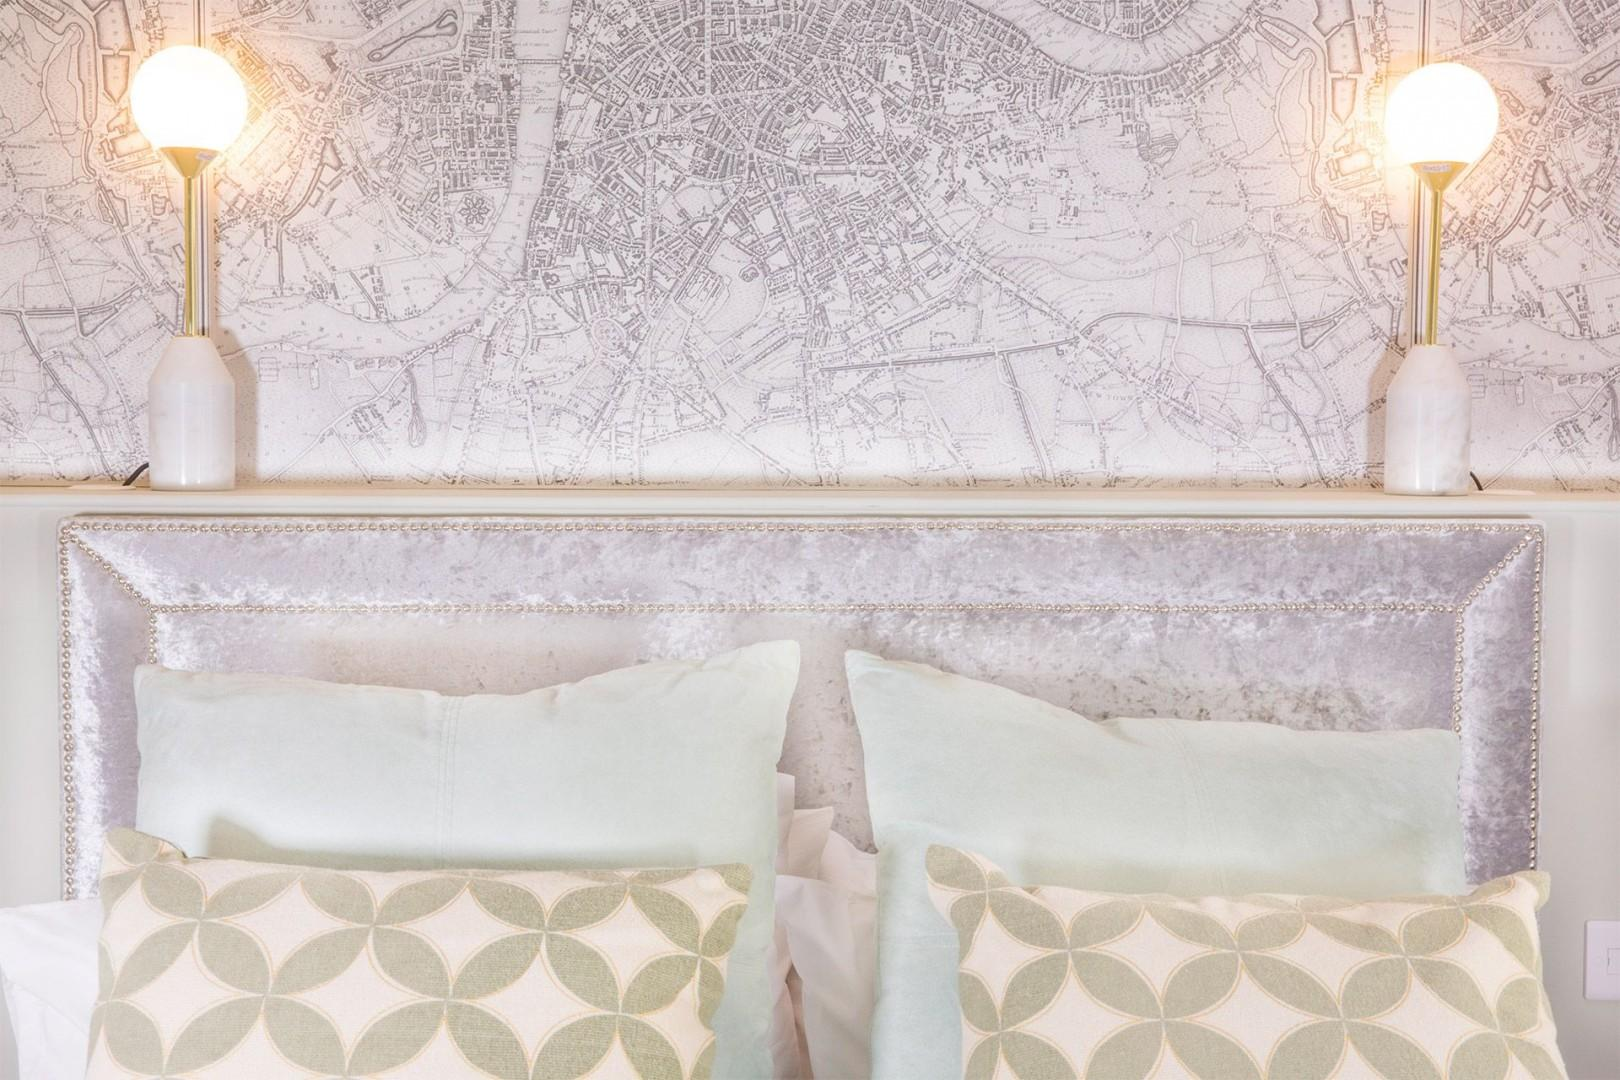 A London map above the bed!